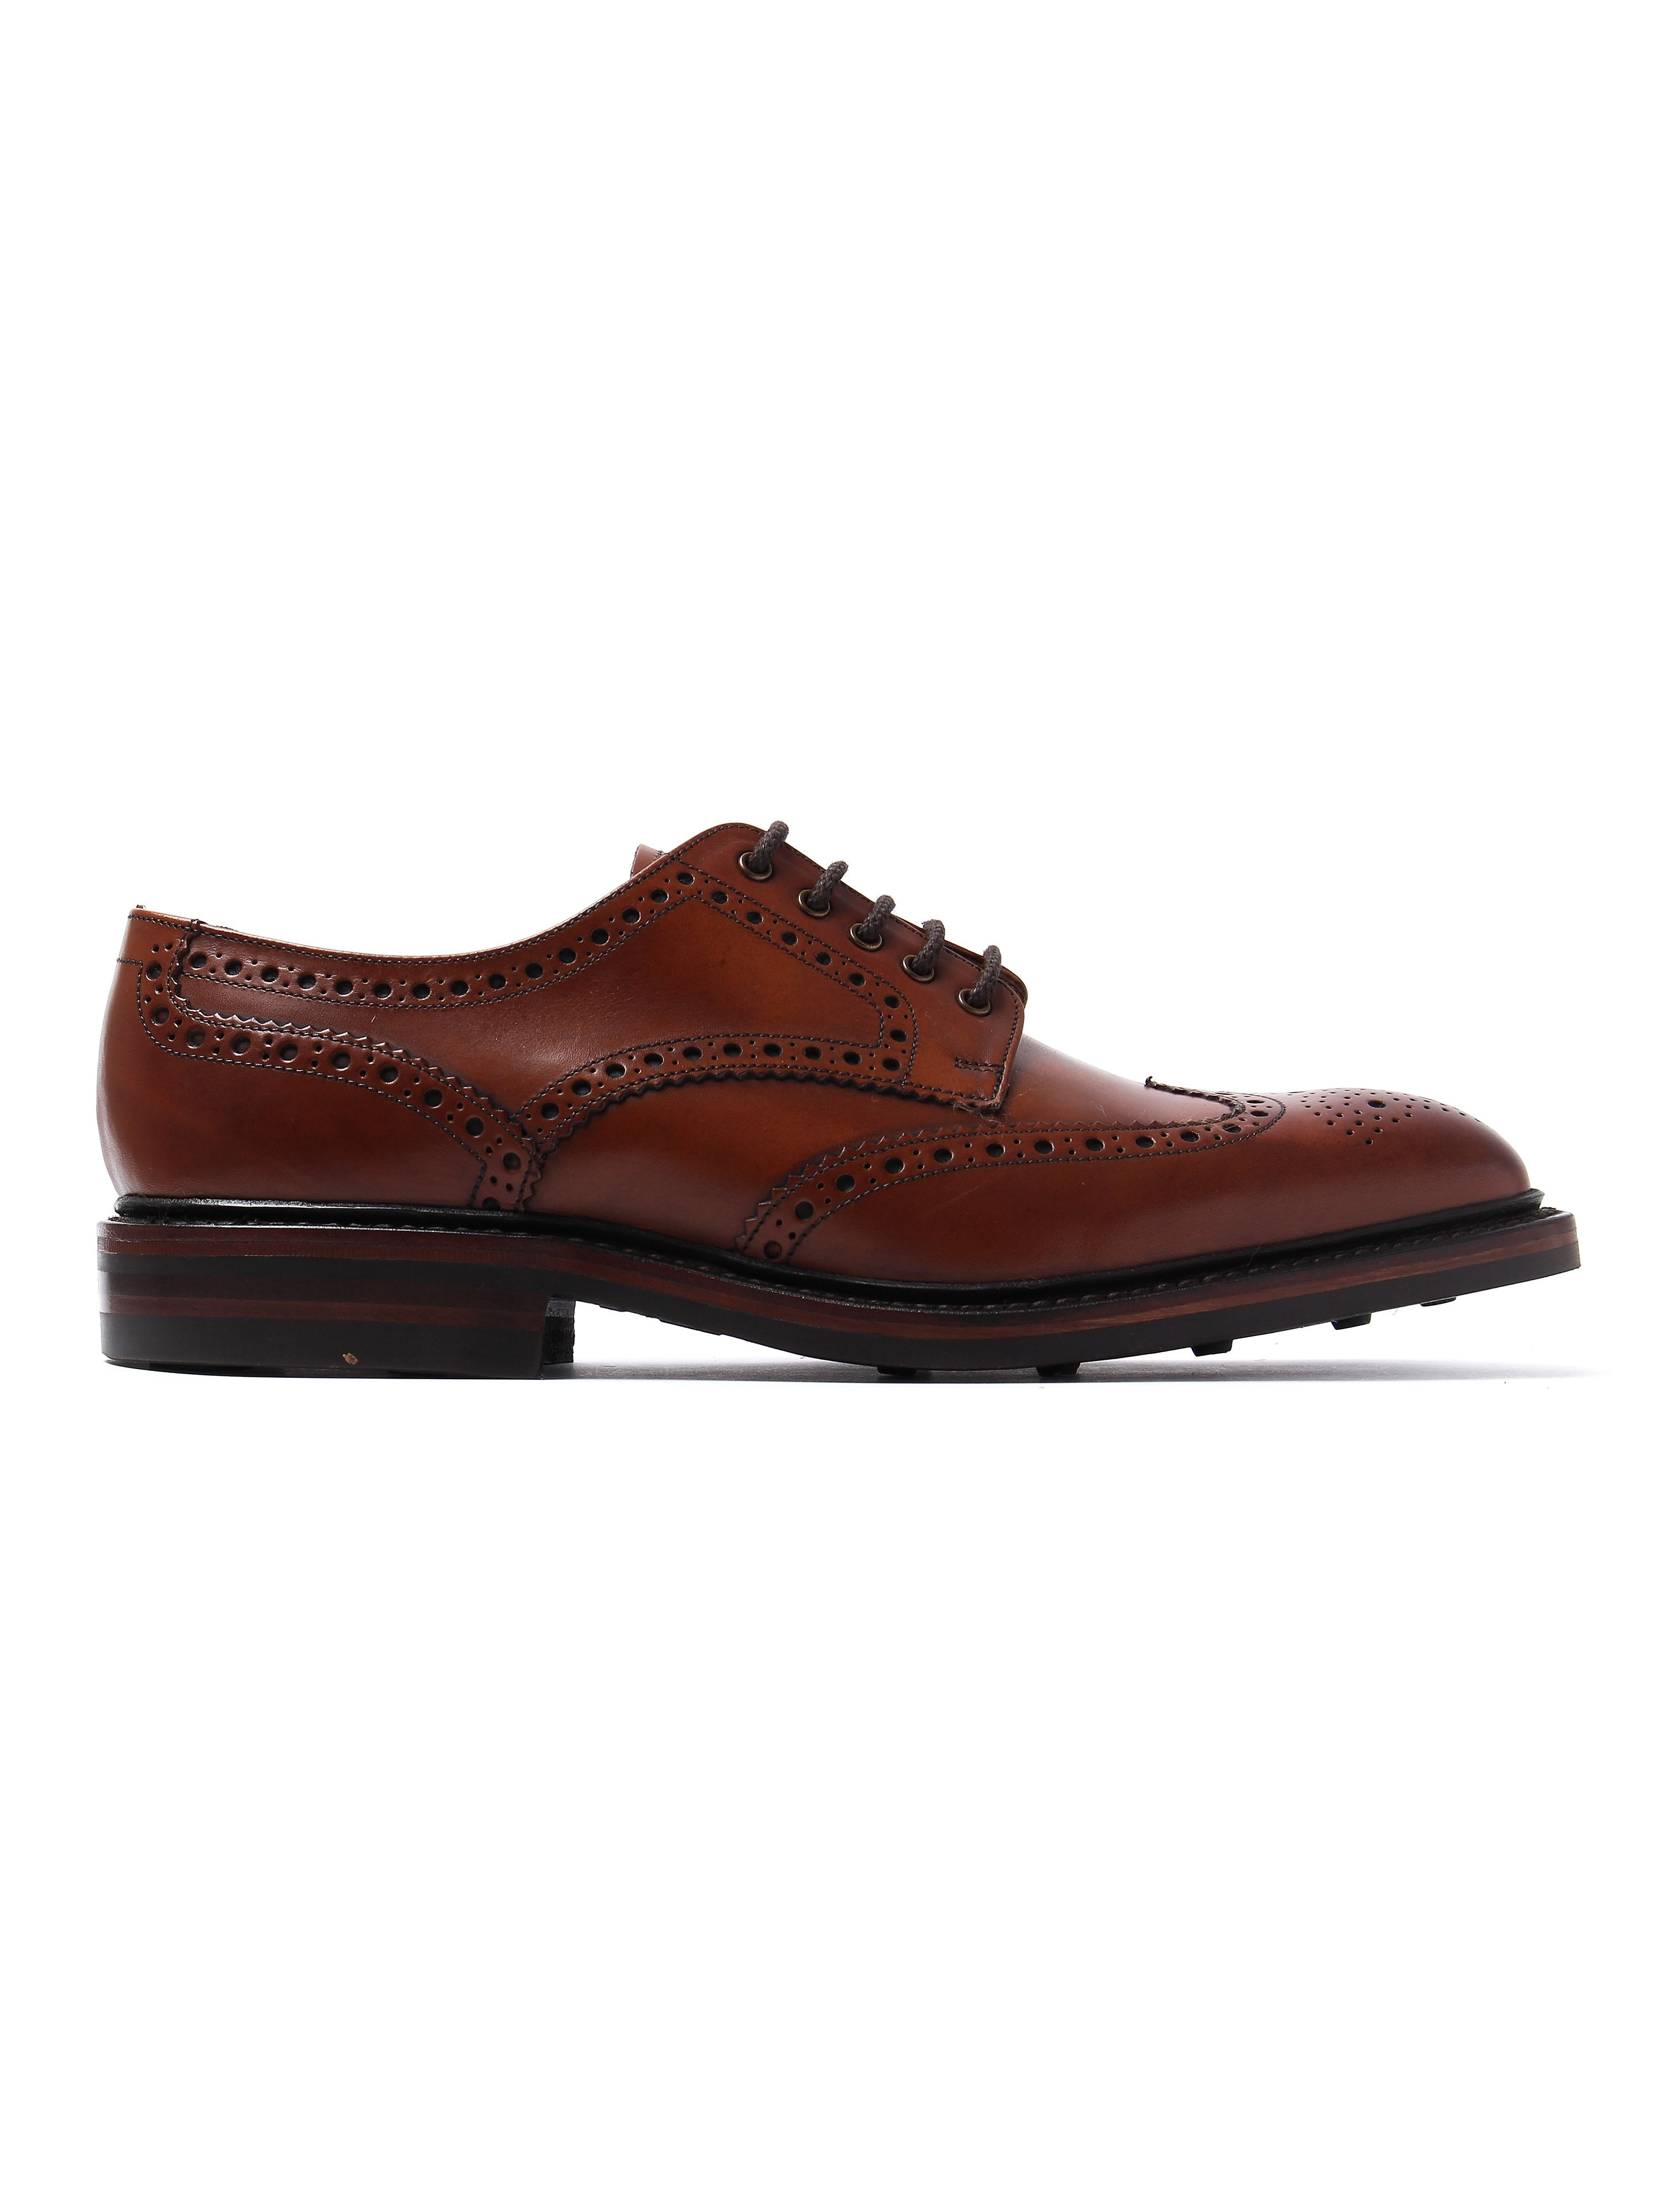 Loake Men's Chester Dainite Brogues - Mahogany Leather